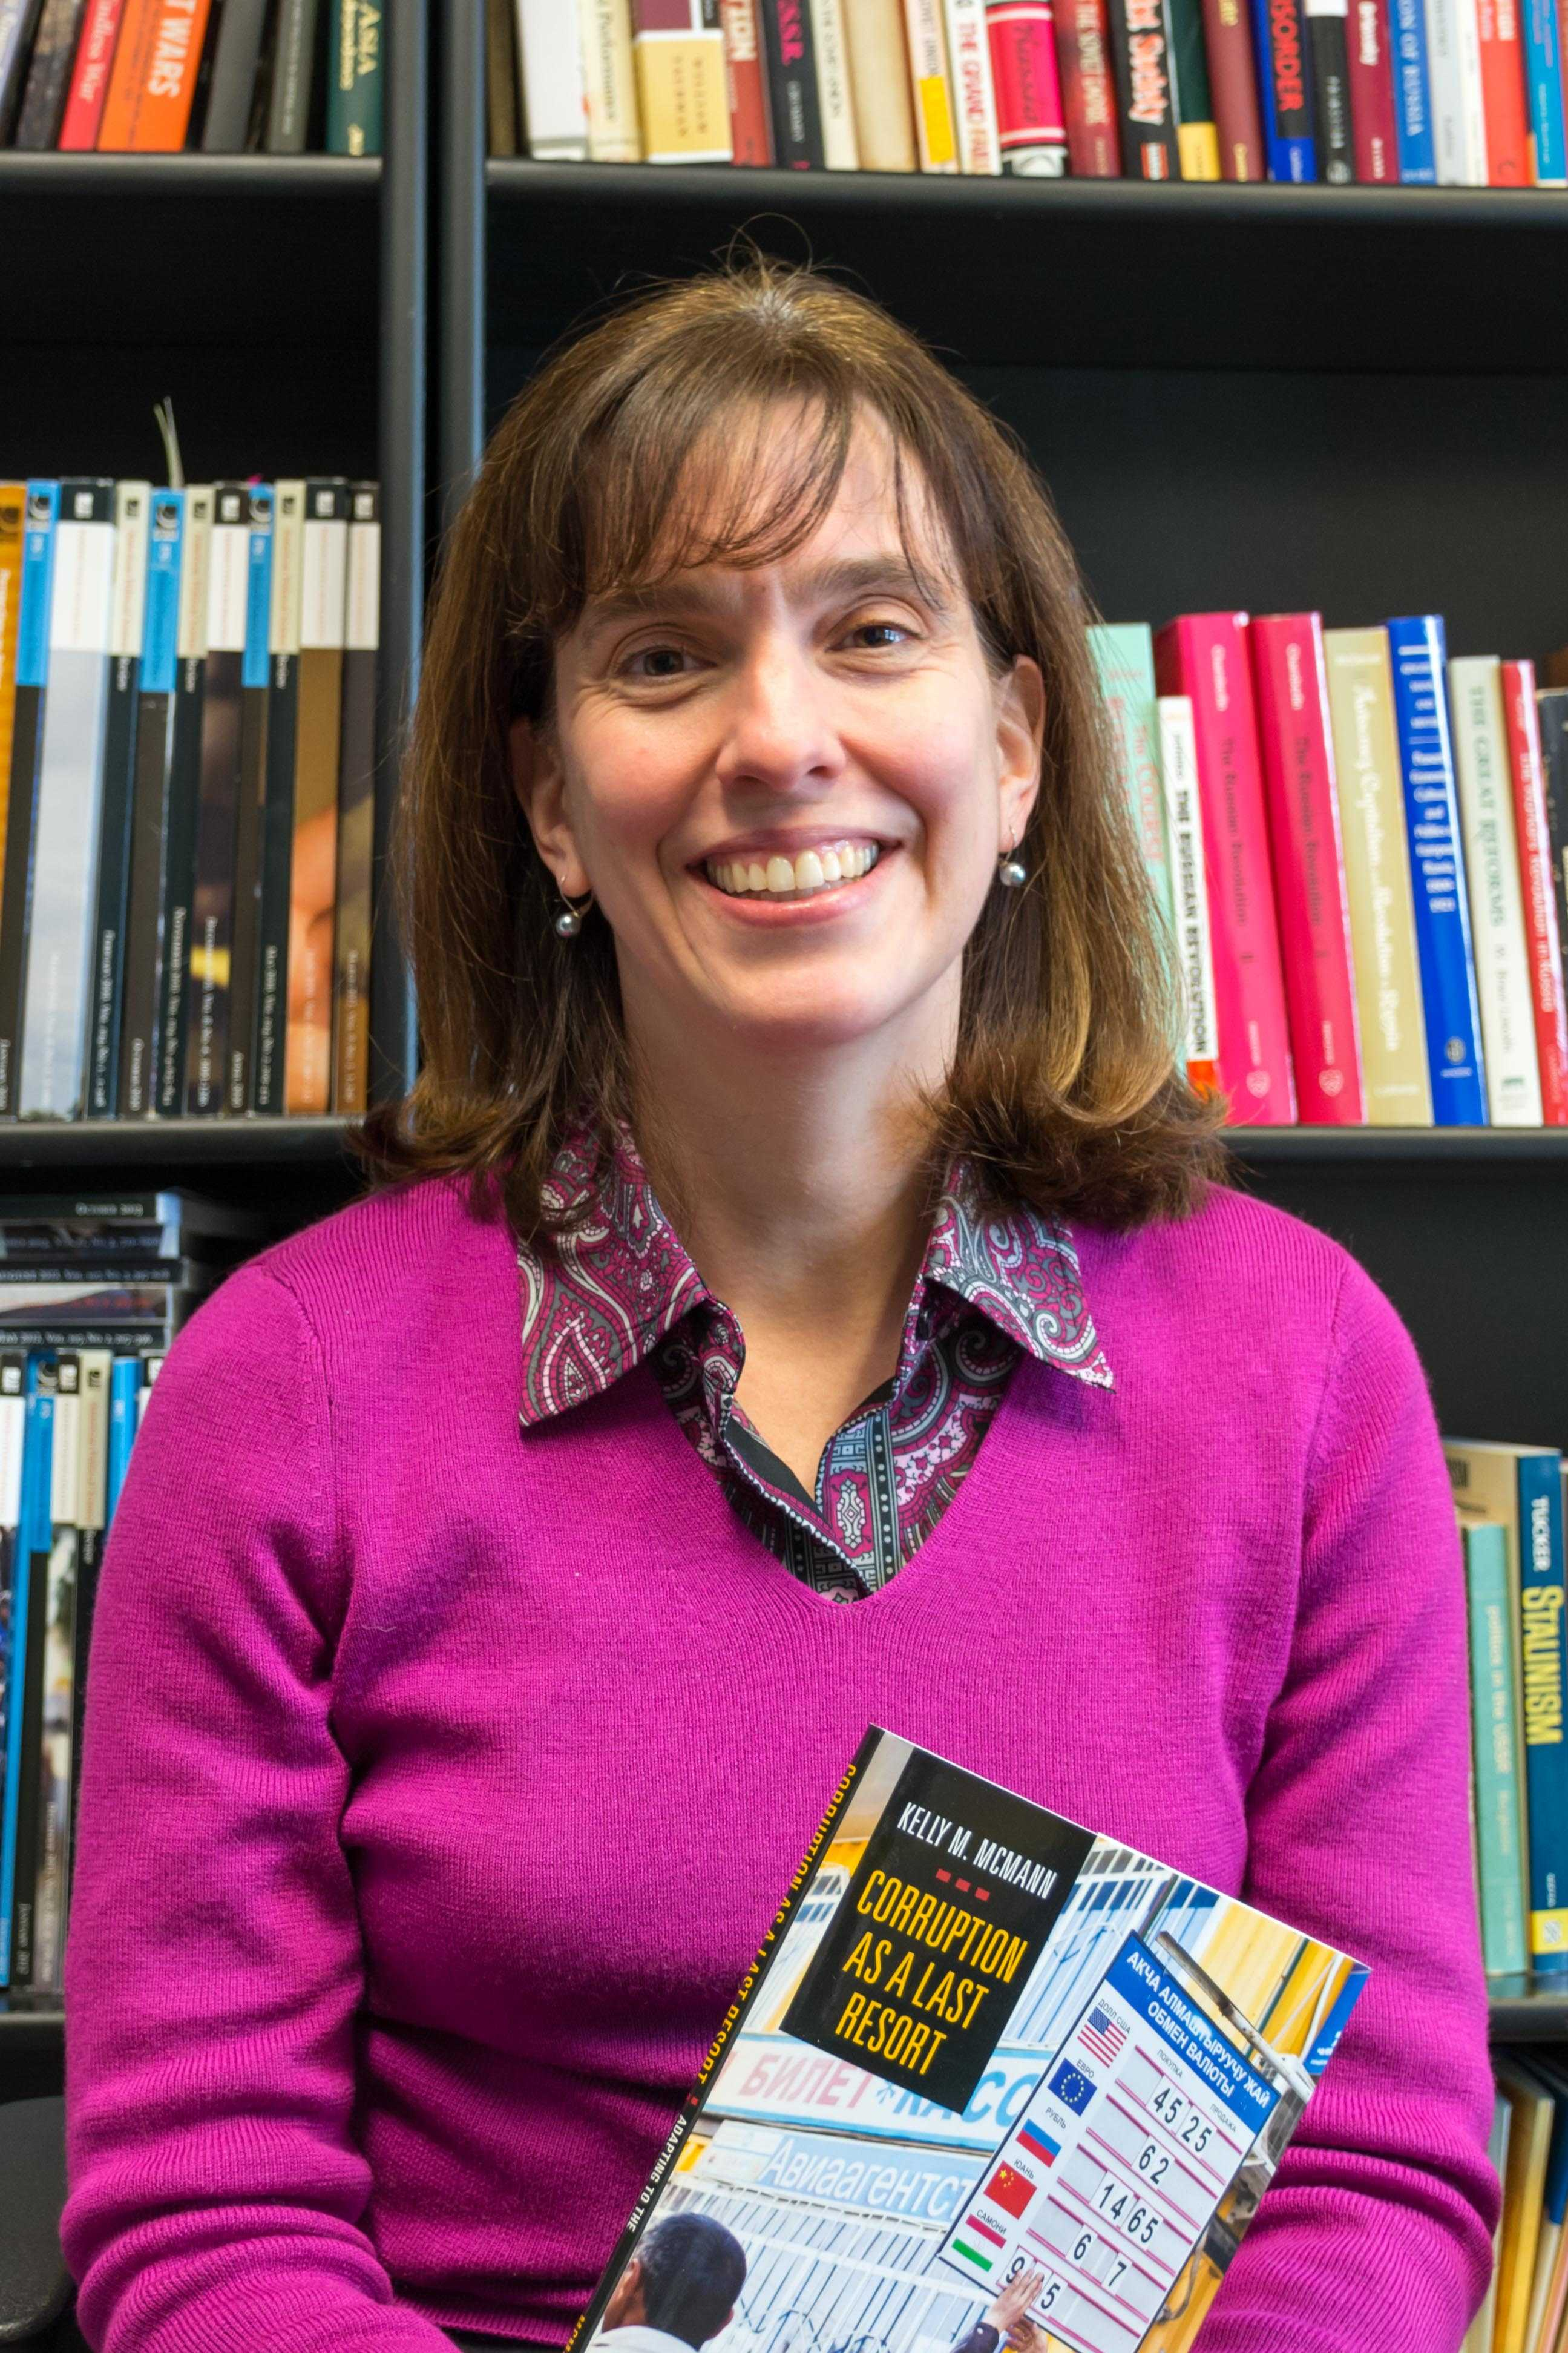 Assistant professor Kelly McMann's book was inspired by her time living with families in the former Soviet Union.